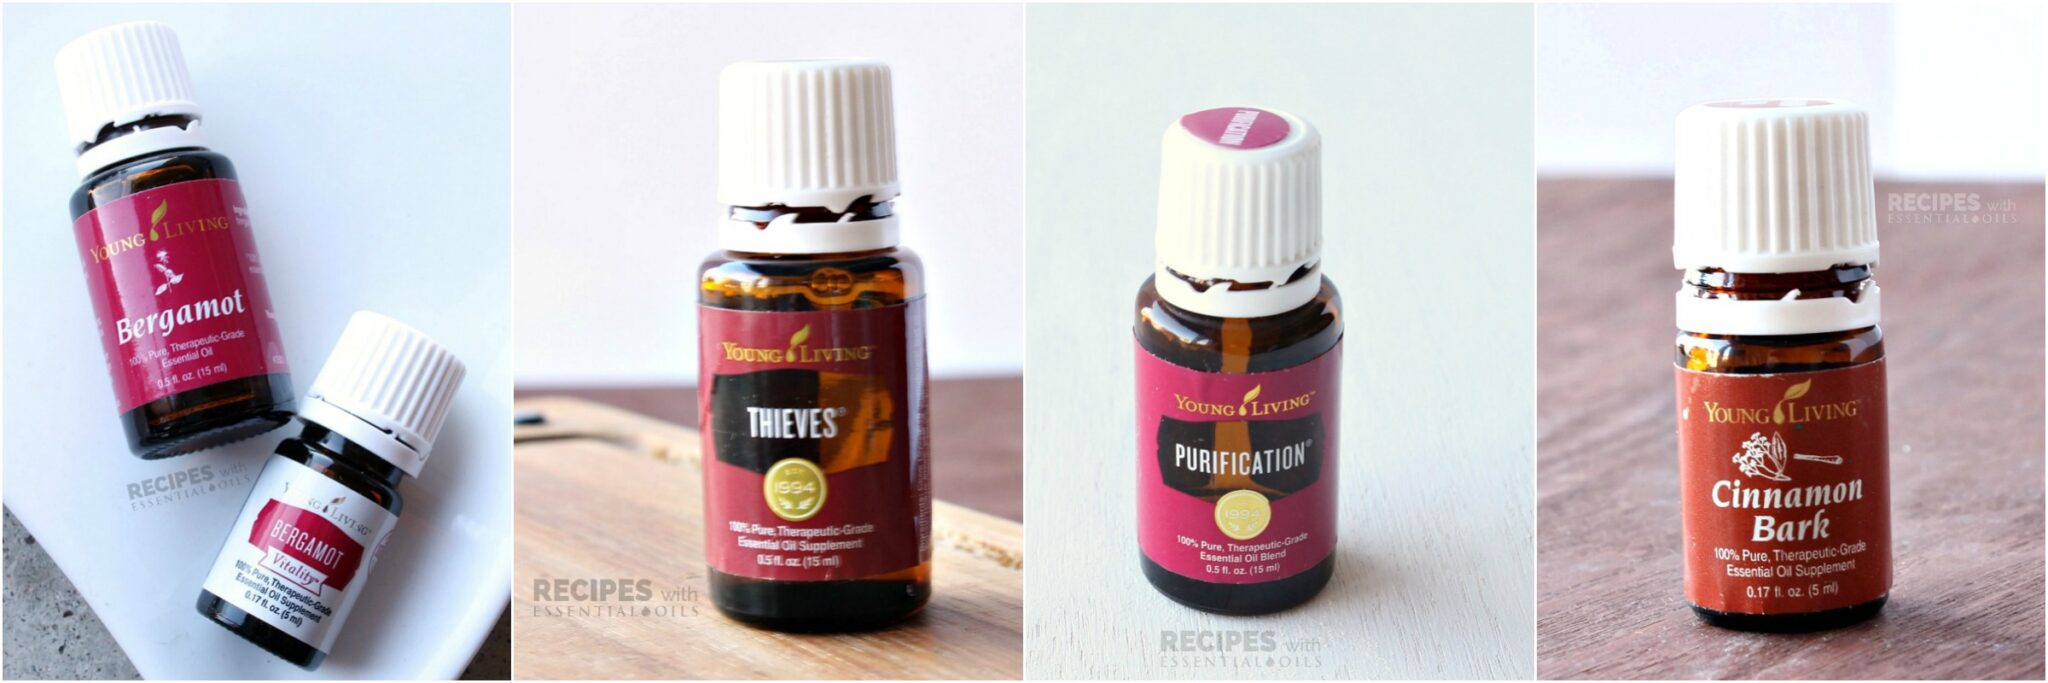 10 Must Have Essential Oils including Bergamot, Thieves, Purification, and Cinnamon Bark from RecipeswithEssentialOils.com